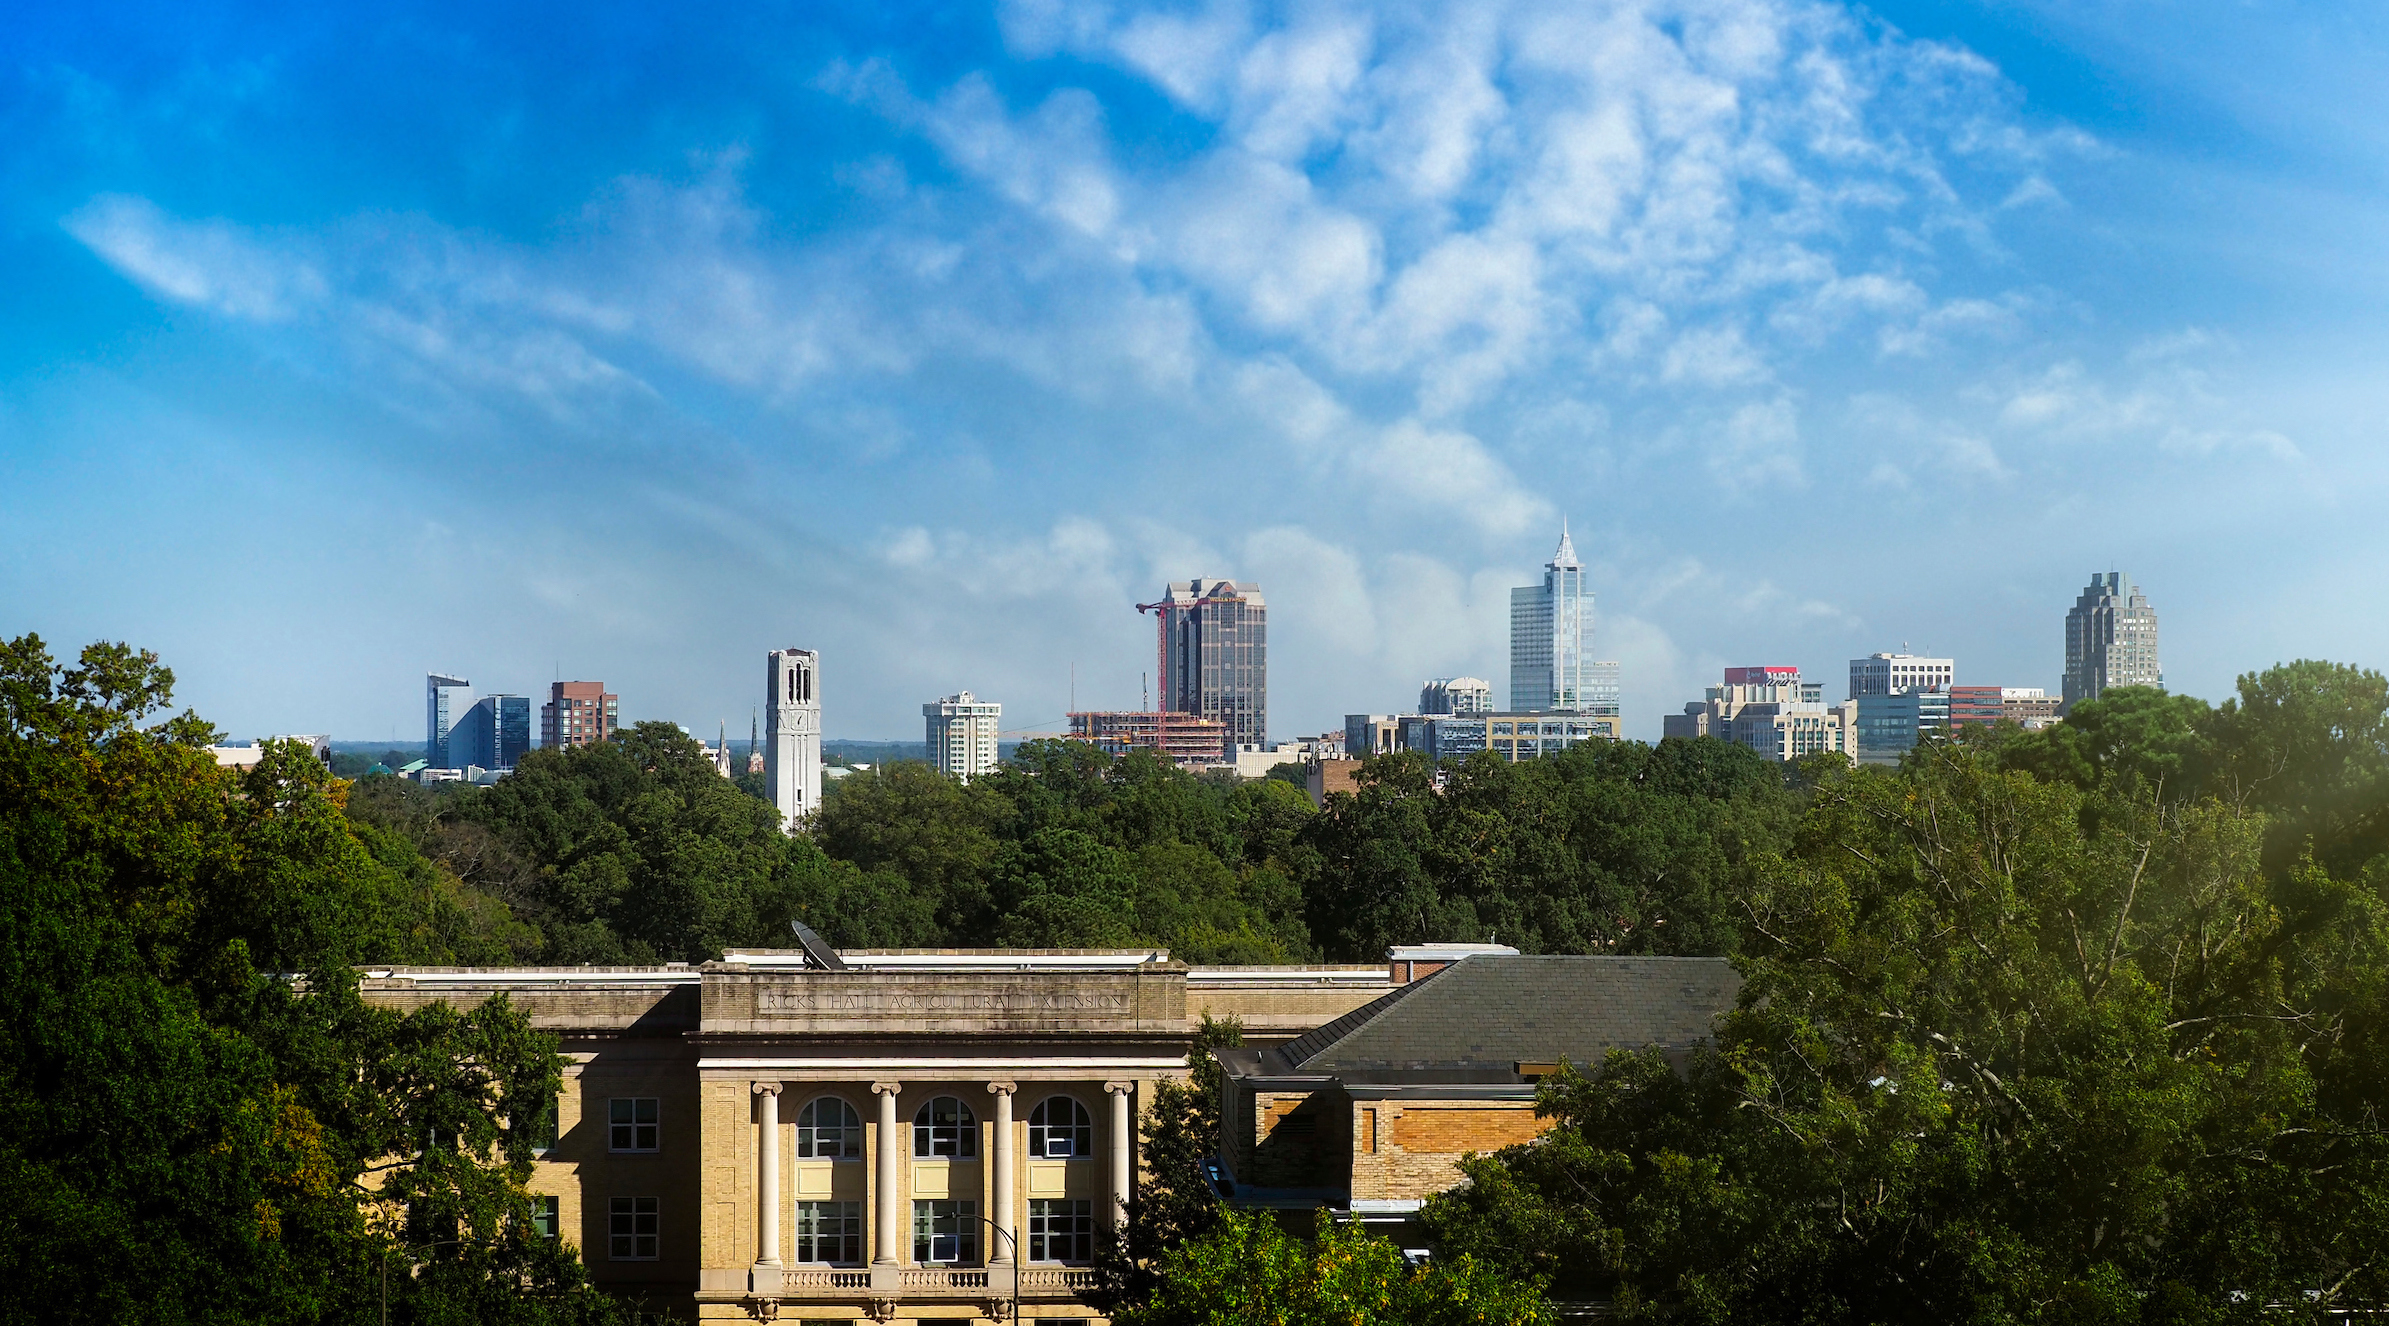 A skyline of Raleigh displays the NC State belltower and downtown high rise buildings